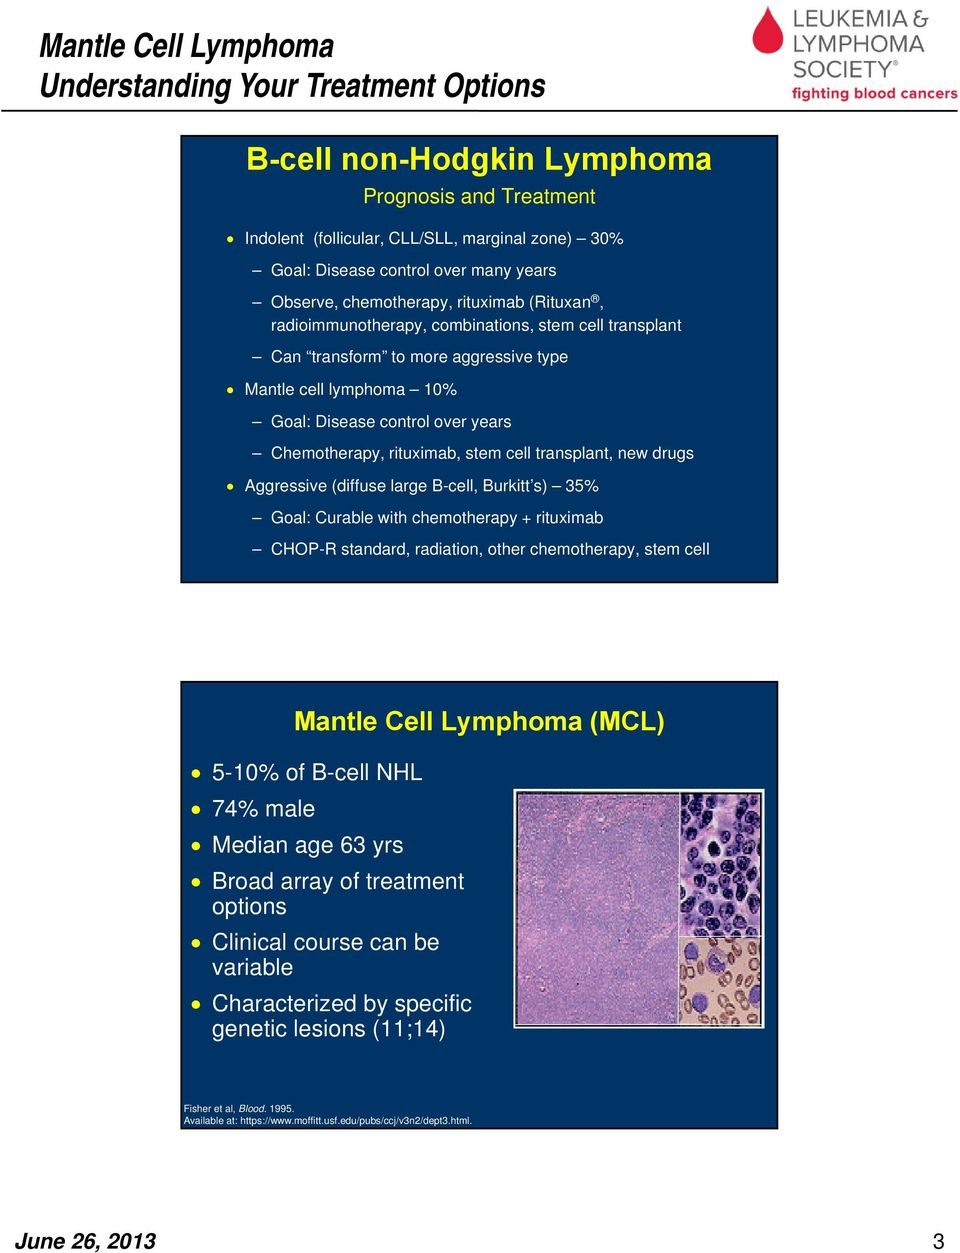 new drugs Aggressive (diffuse large B-cell, Burkitt s) 35% Goal: Curable with chemotherapy + rituximab CHOP-R standard, radiation, other chemotherapy, stem cell Mantle Cell Lymphoma (MCL) 5-10% of